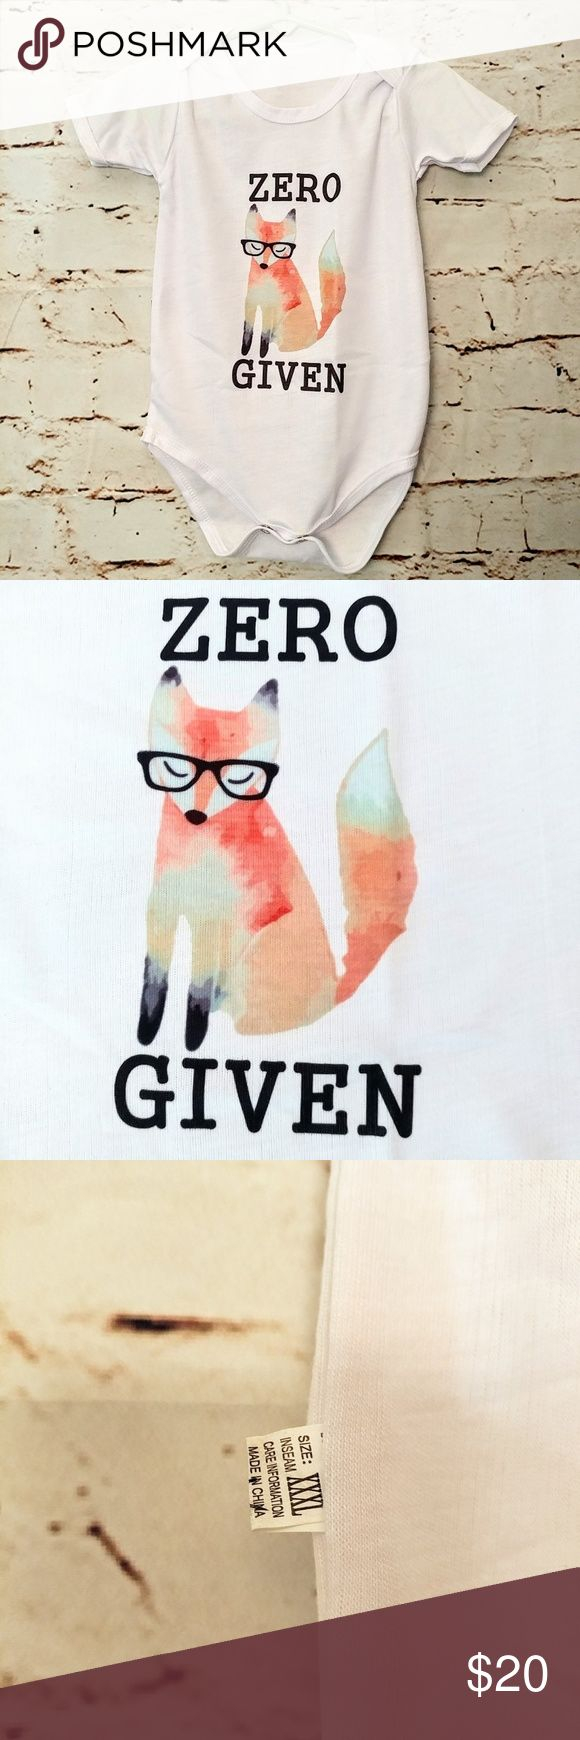 """Zero Fox Given  Onesie with Hipster Fox 24 Month This is my kids Lol! Play on words...""""No Fox Given"""" cute Hipster fox in black rimmed glasses. Shirt is 100% polyester. It is light weight and feels comfy. See last photo for measurements. Can fit 24 months or 2T. This would make a great baby shower gift and will definitly be a topic of conversation! There is a small imperfection on the back. Its not a hole and it is very small ( see last photo) There are 2 snap closures on the bottom. One…"""